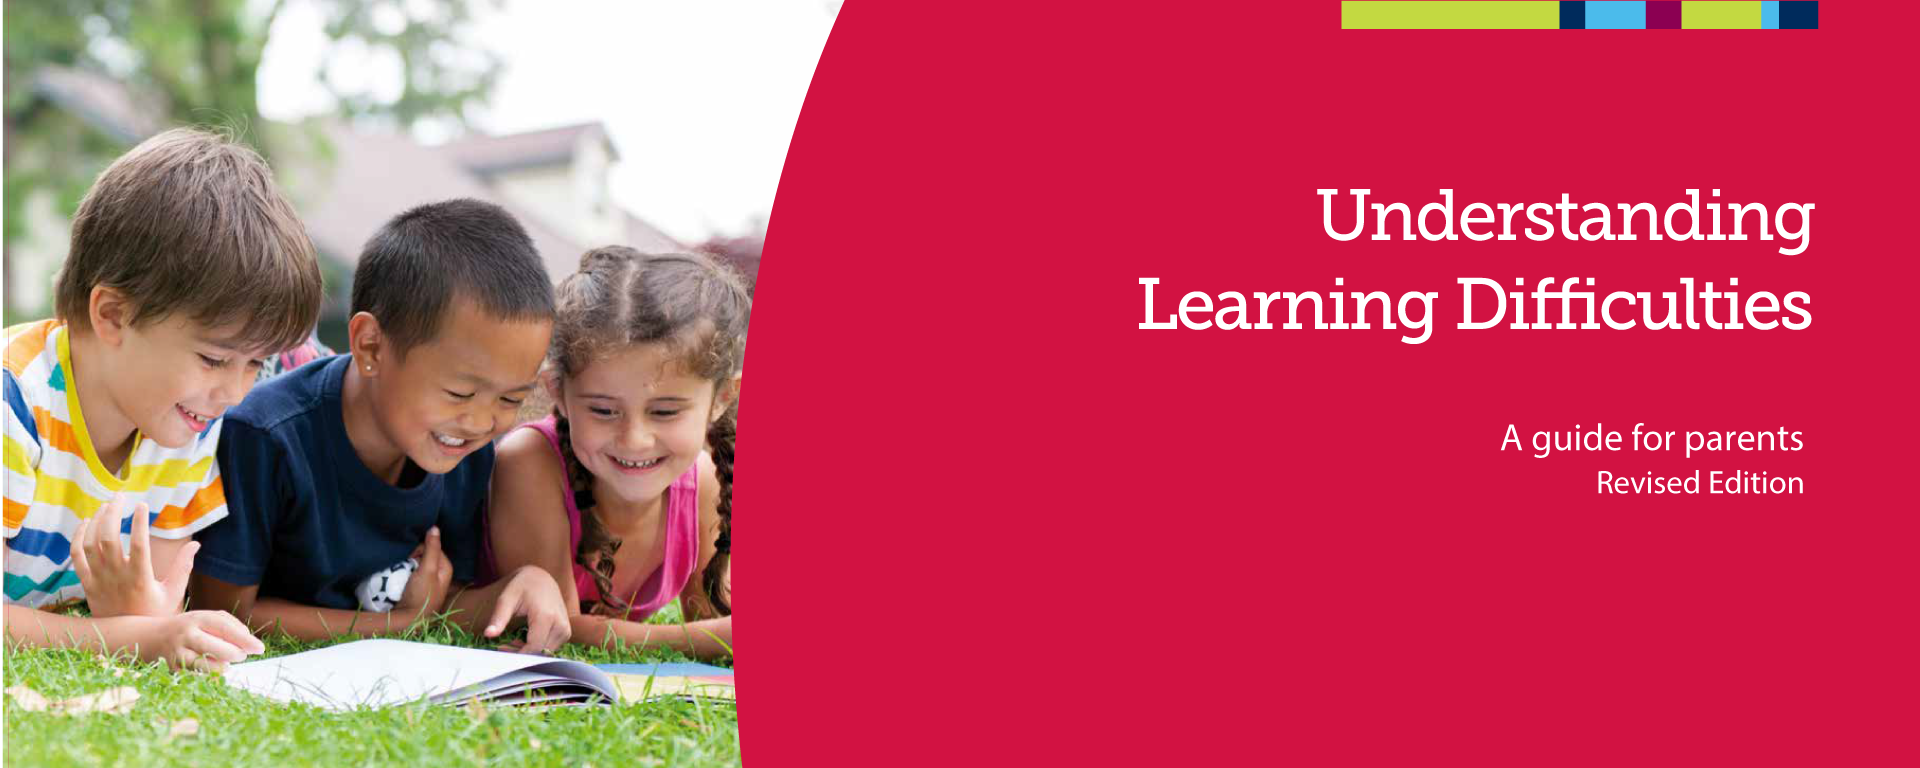 Understanding Learning Difficulties: A guide for parents